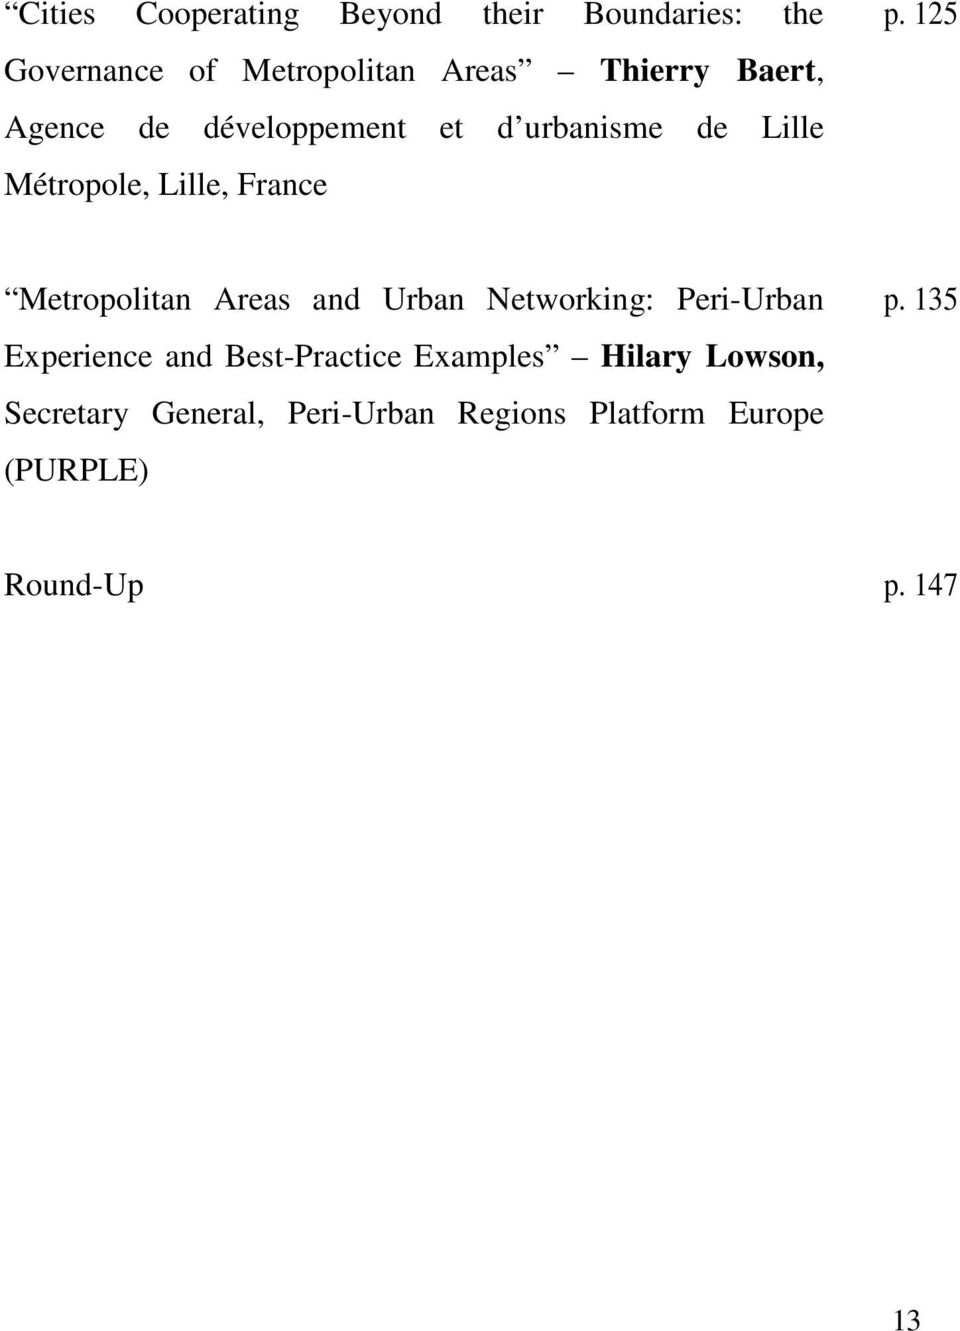 125 Metropolitan Areas and Urban Networking: Peri-Urban Experience and Best-Practice